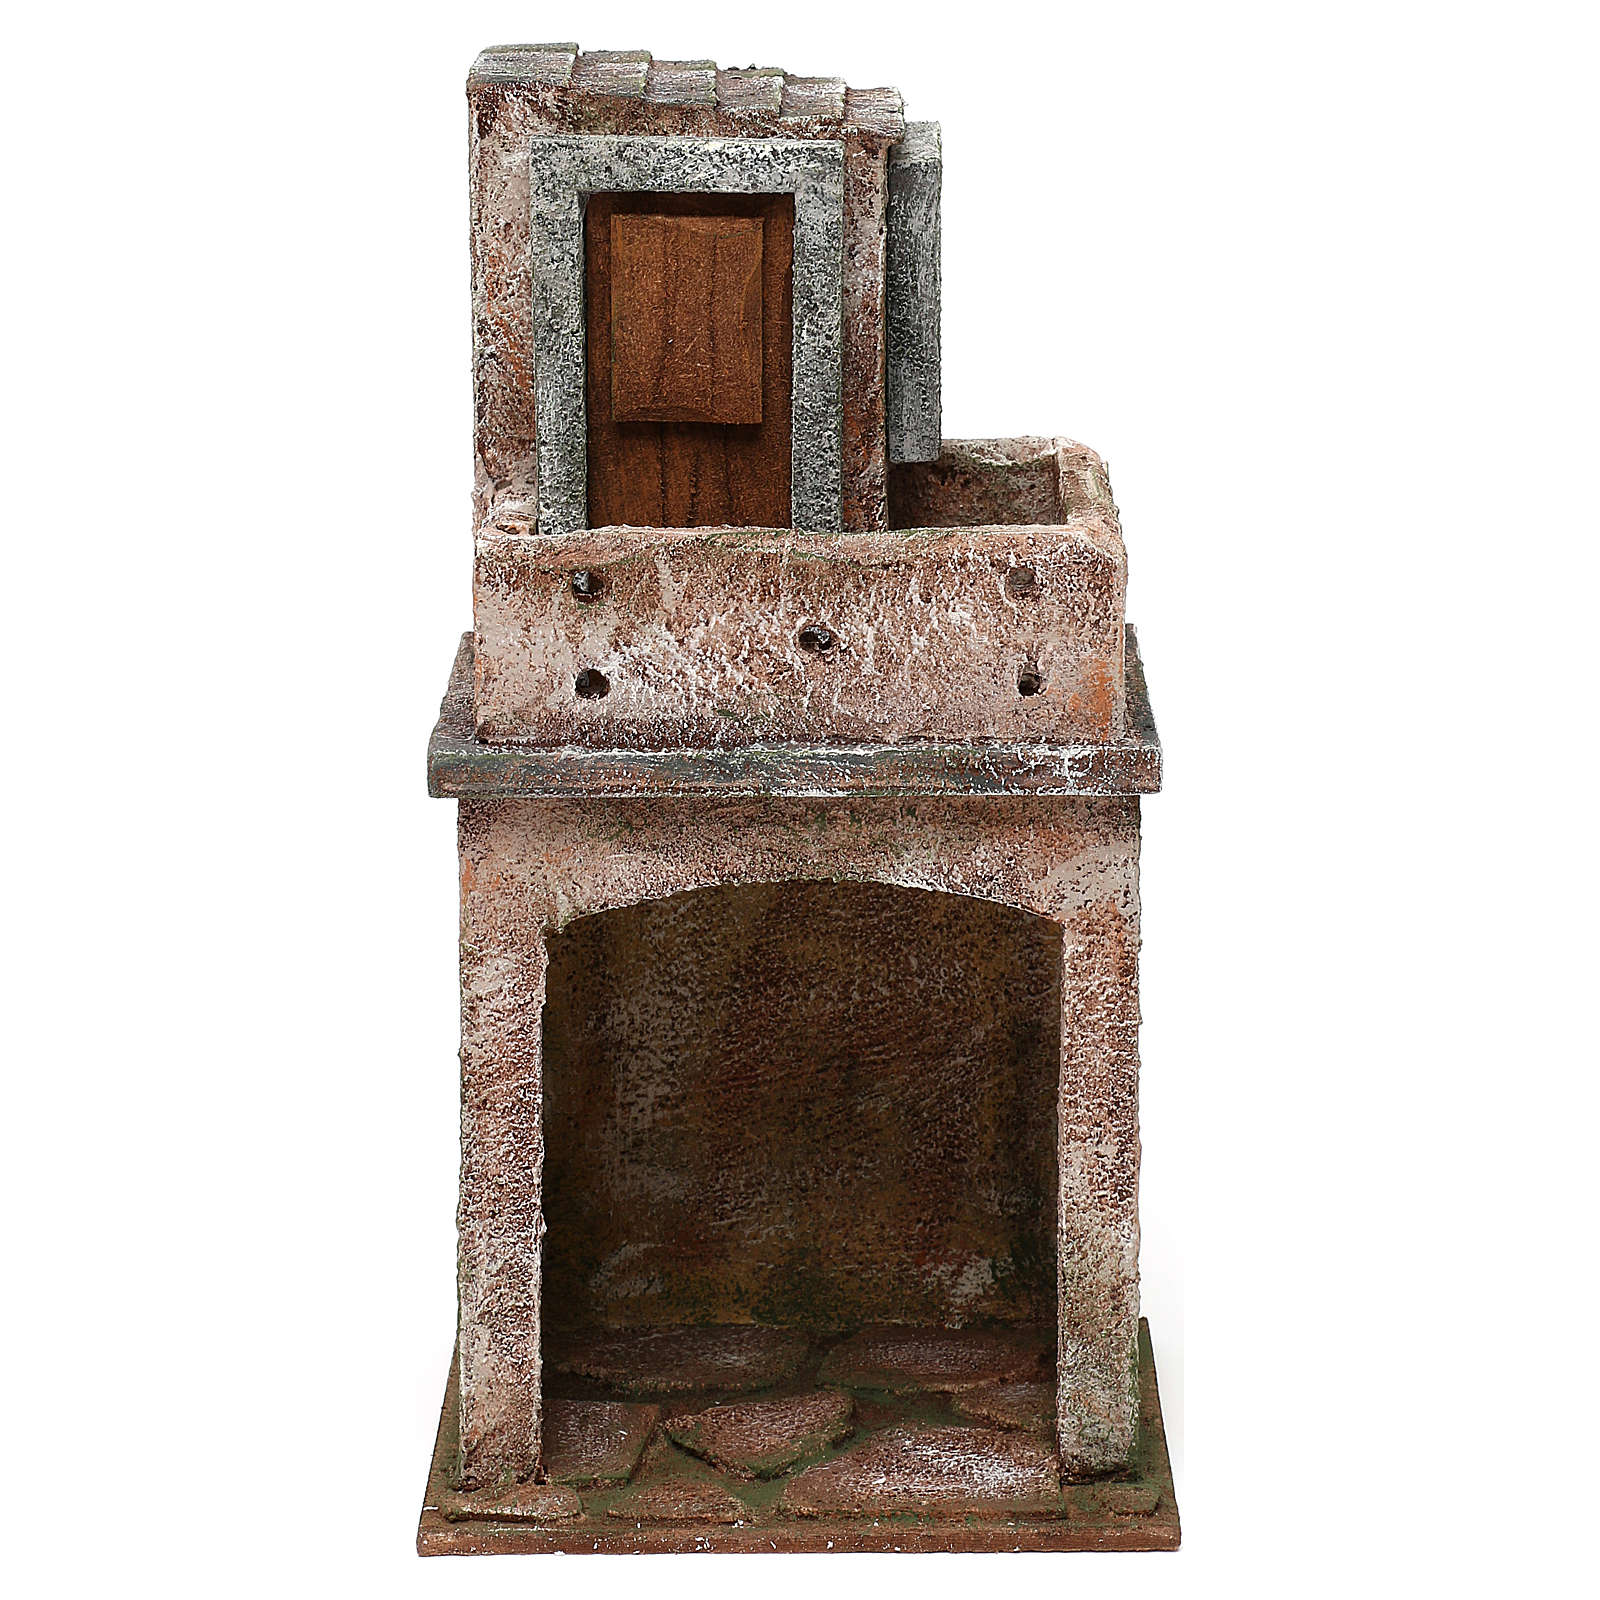 House with balcony and roofed area for 10 cm Nativity scene, 25x15x10 cm 4